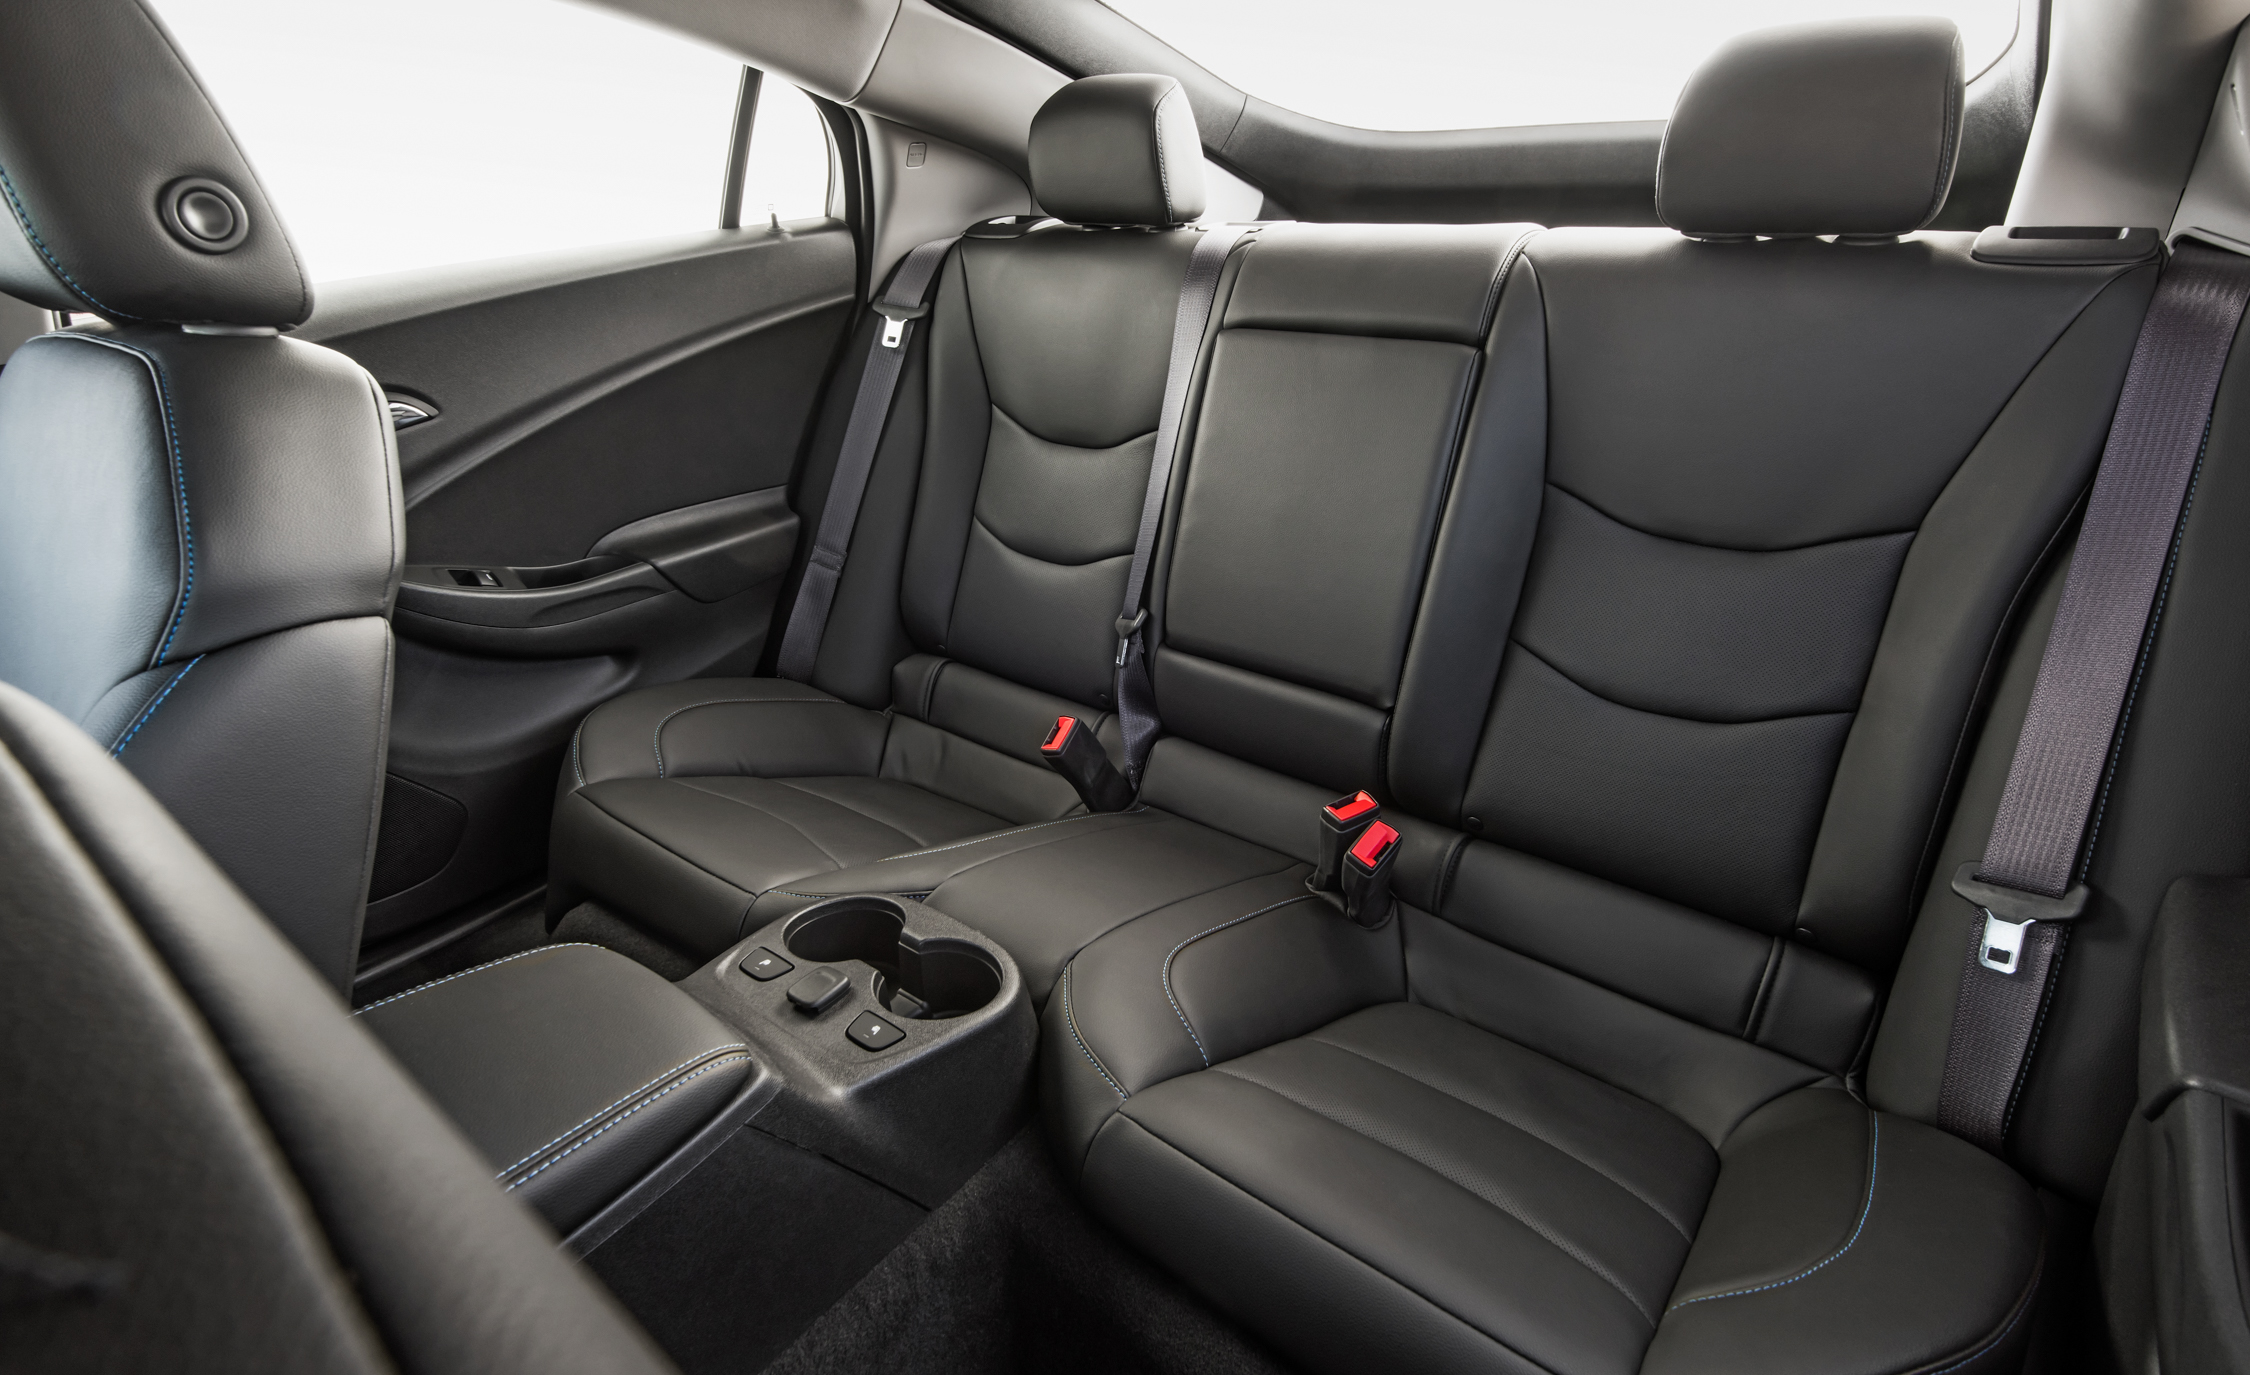 2017 Chevrolet Volt Interior Seats Rear (View 10 of 16)